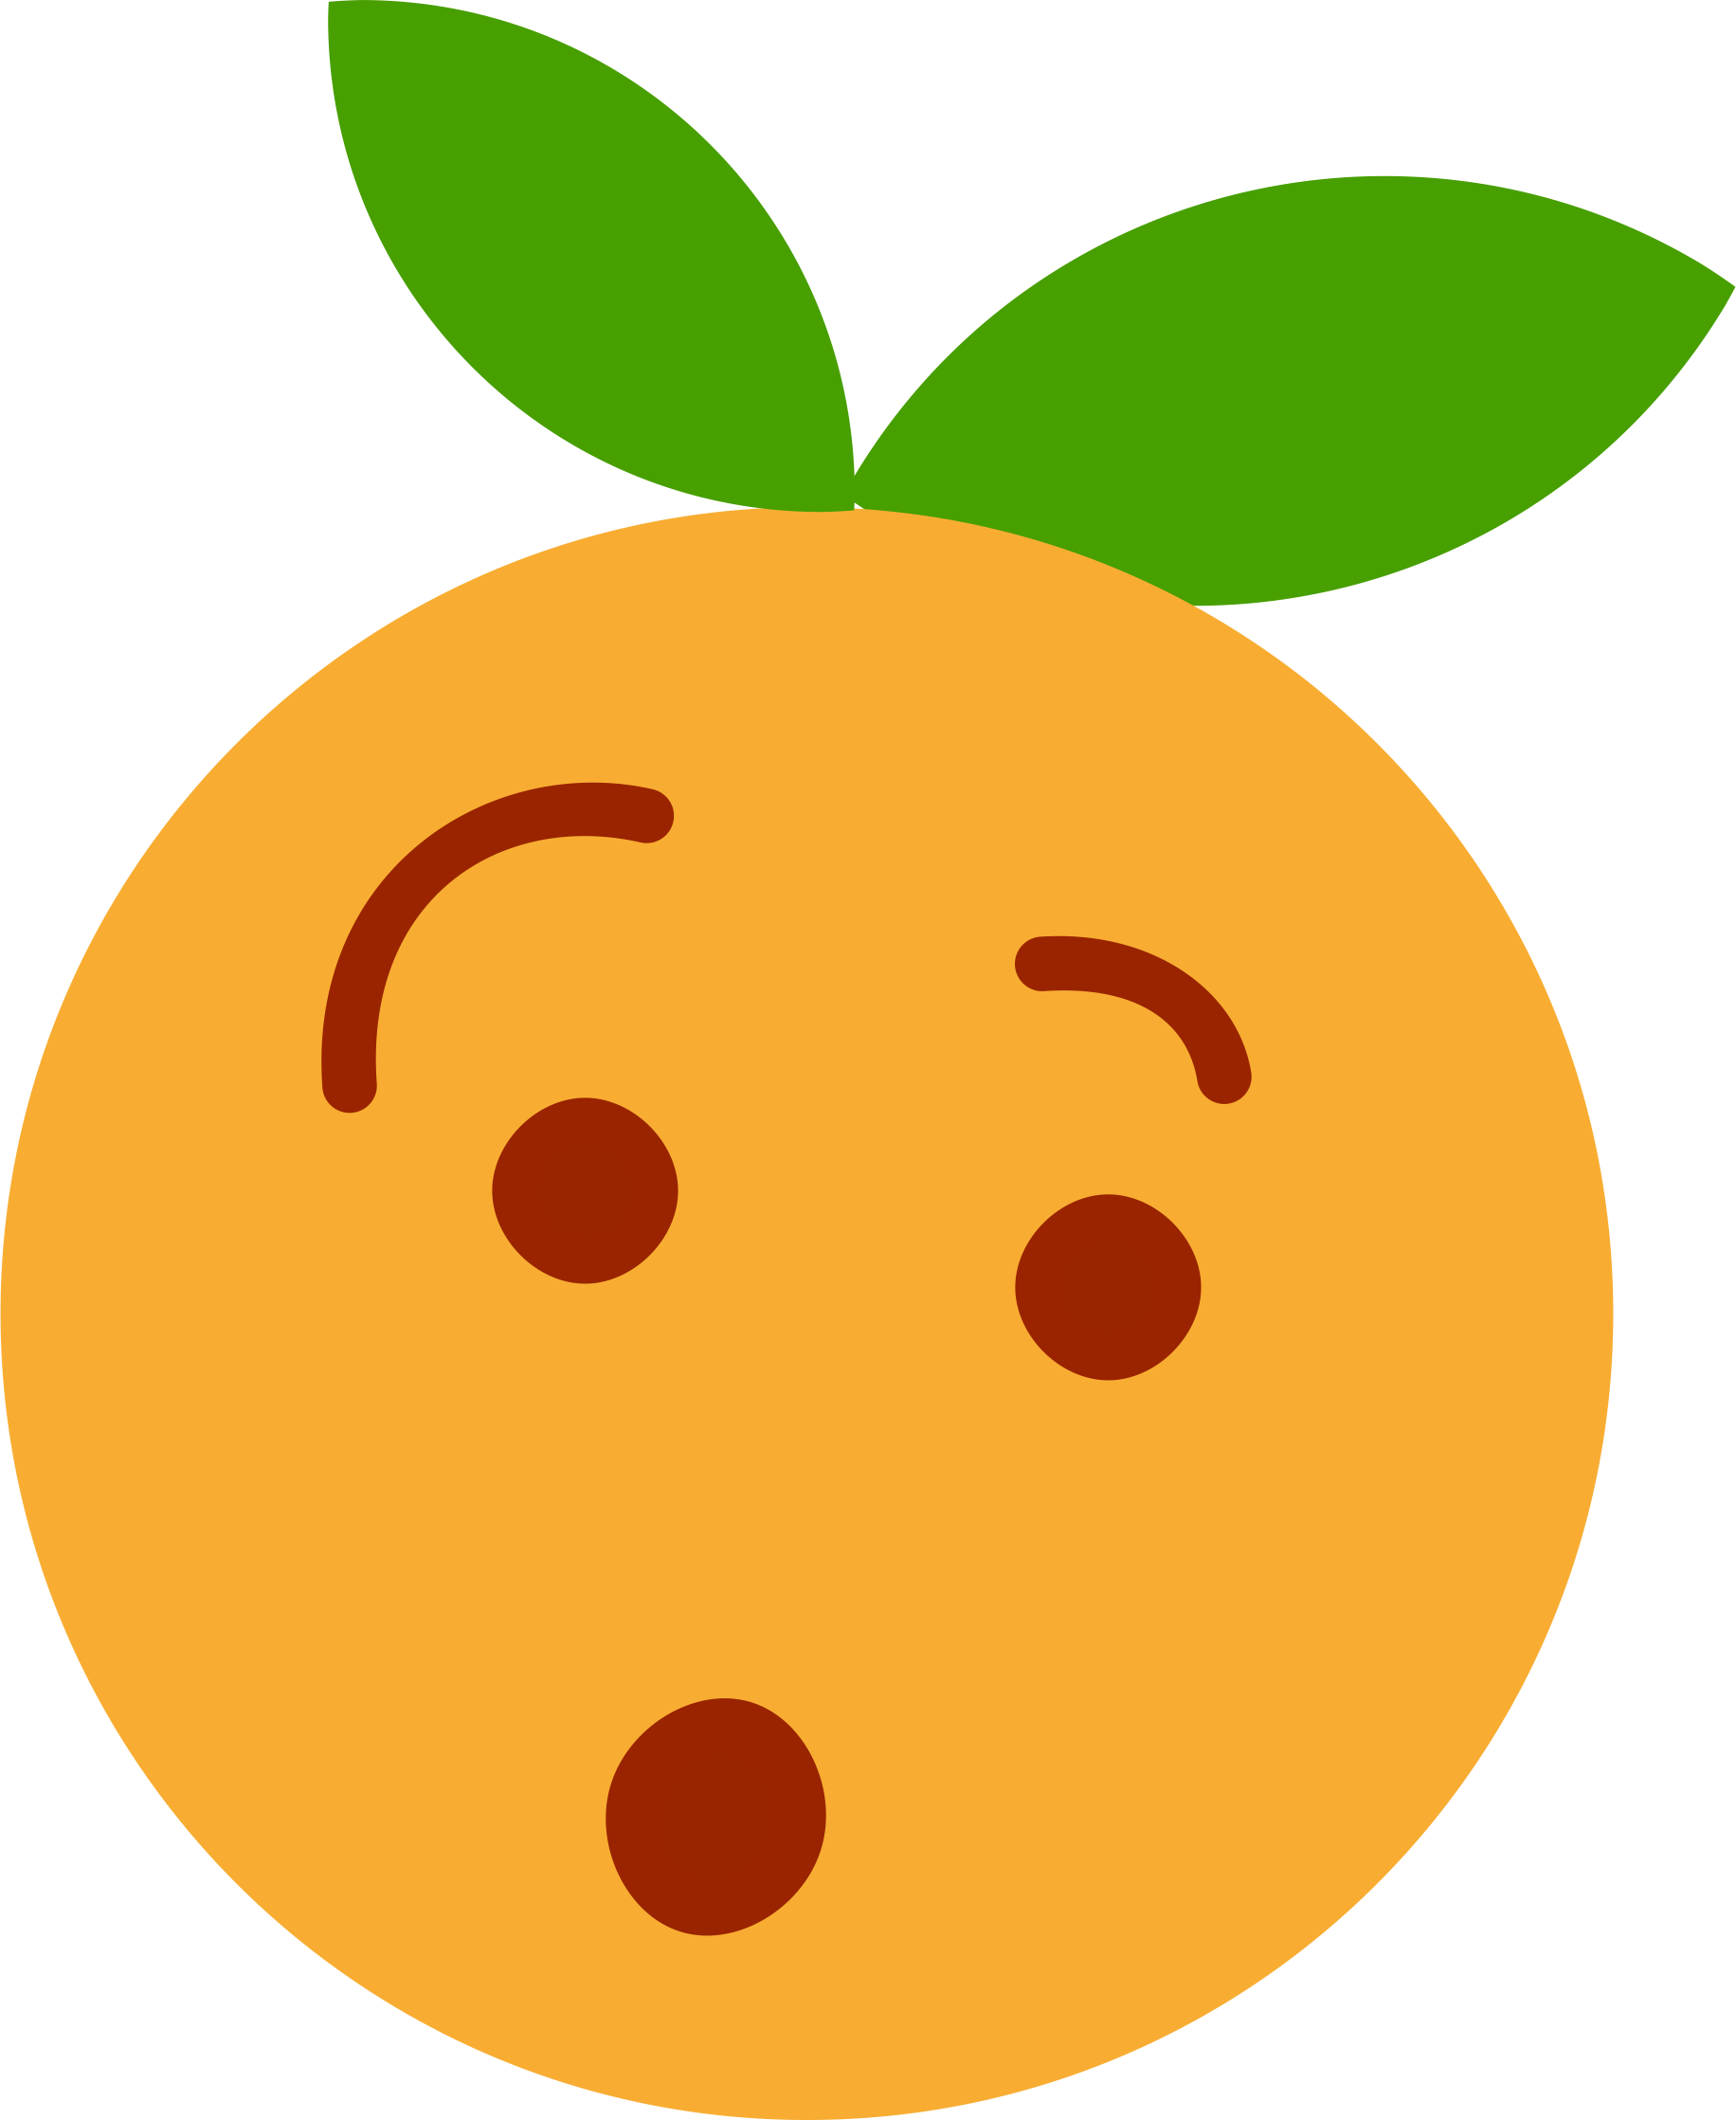 Smiley Clem Euh? by Justin Ternet Clementine